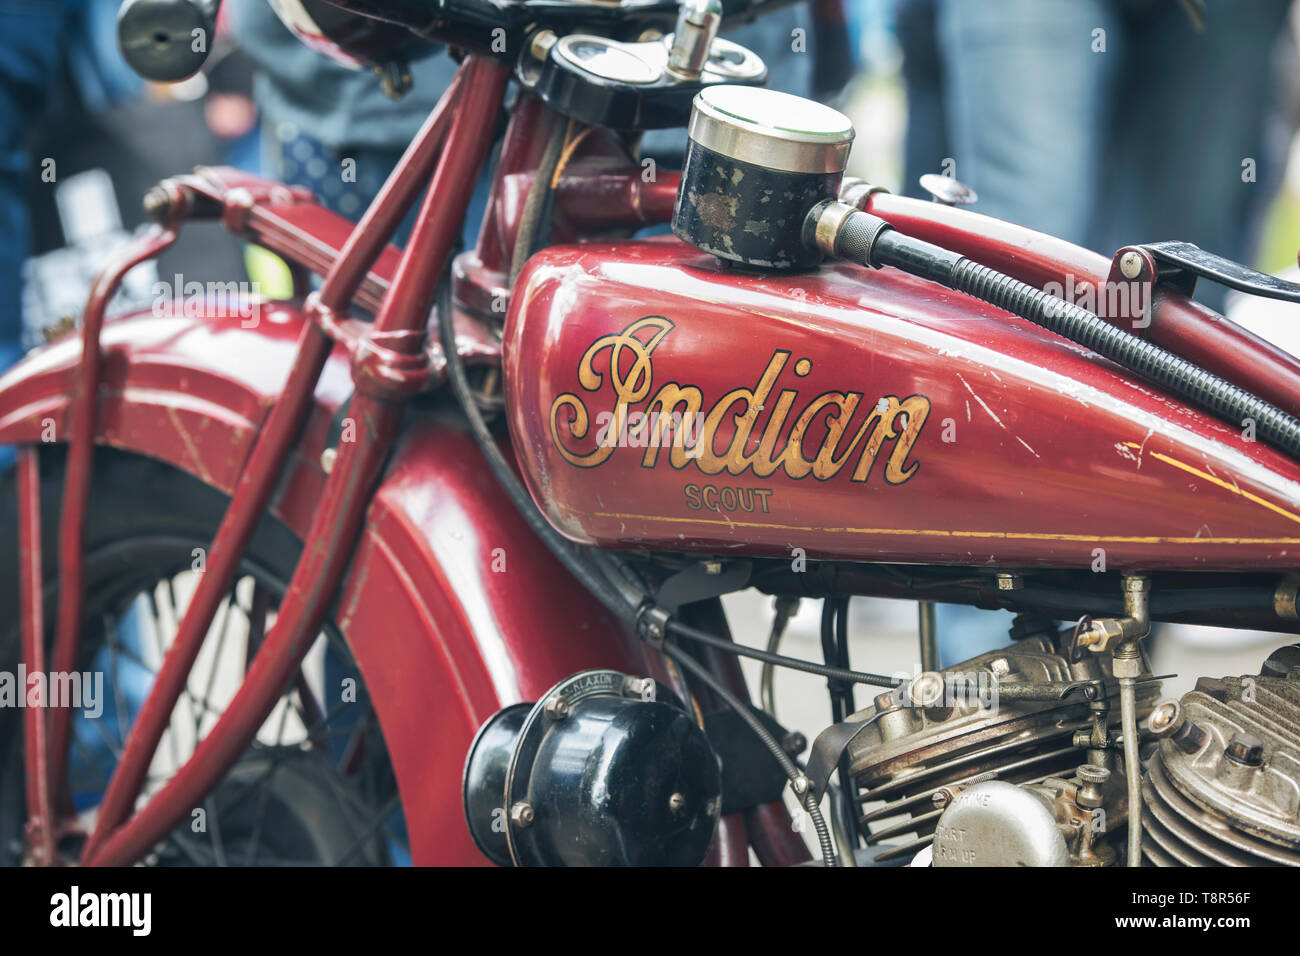 1930 Indian 101 Scout motorcycle. at Bicester Heritage Centre 'Drive It Day'.  Bicester, Oxfordshire, England. Vintage filter applied - Stock Image